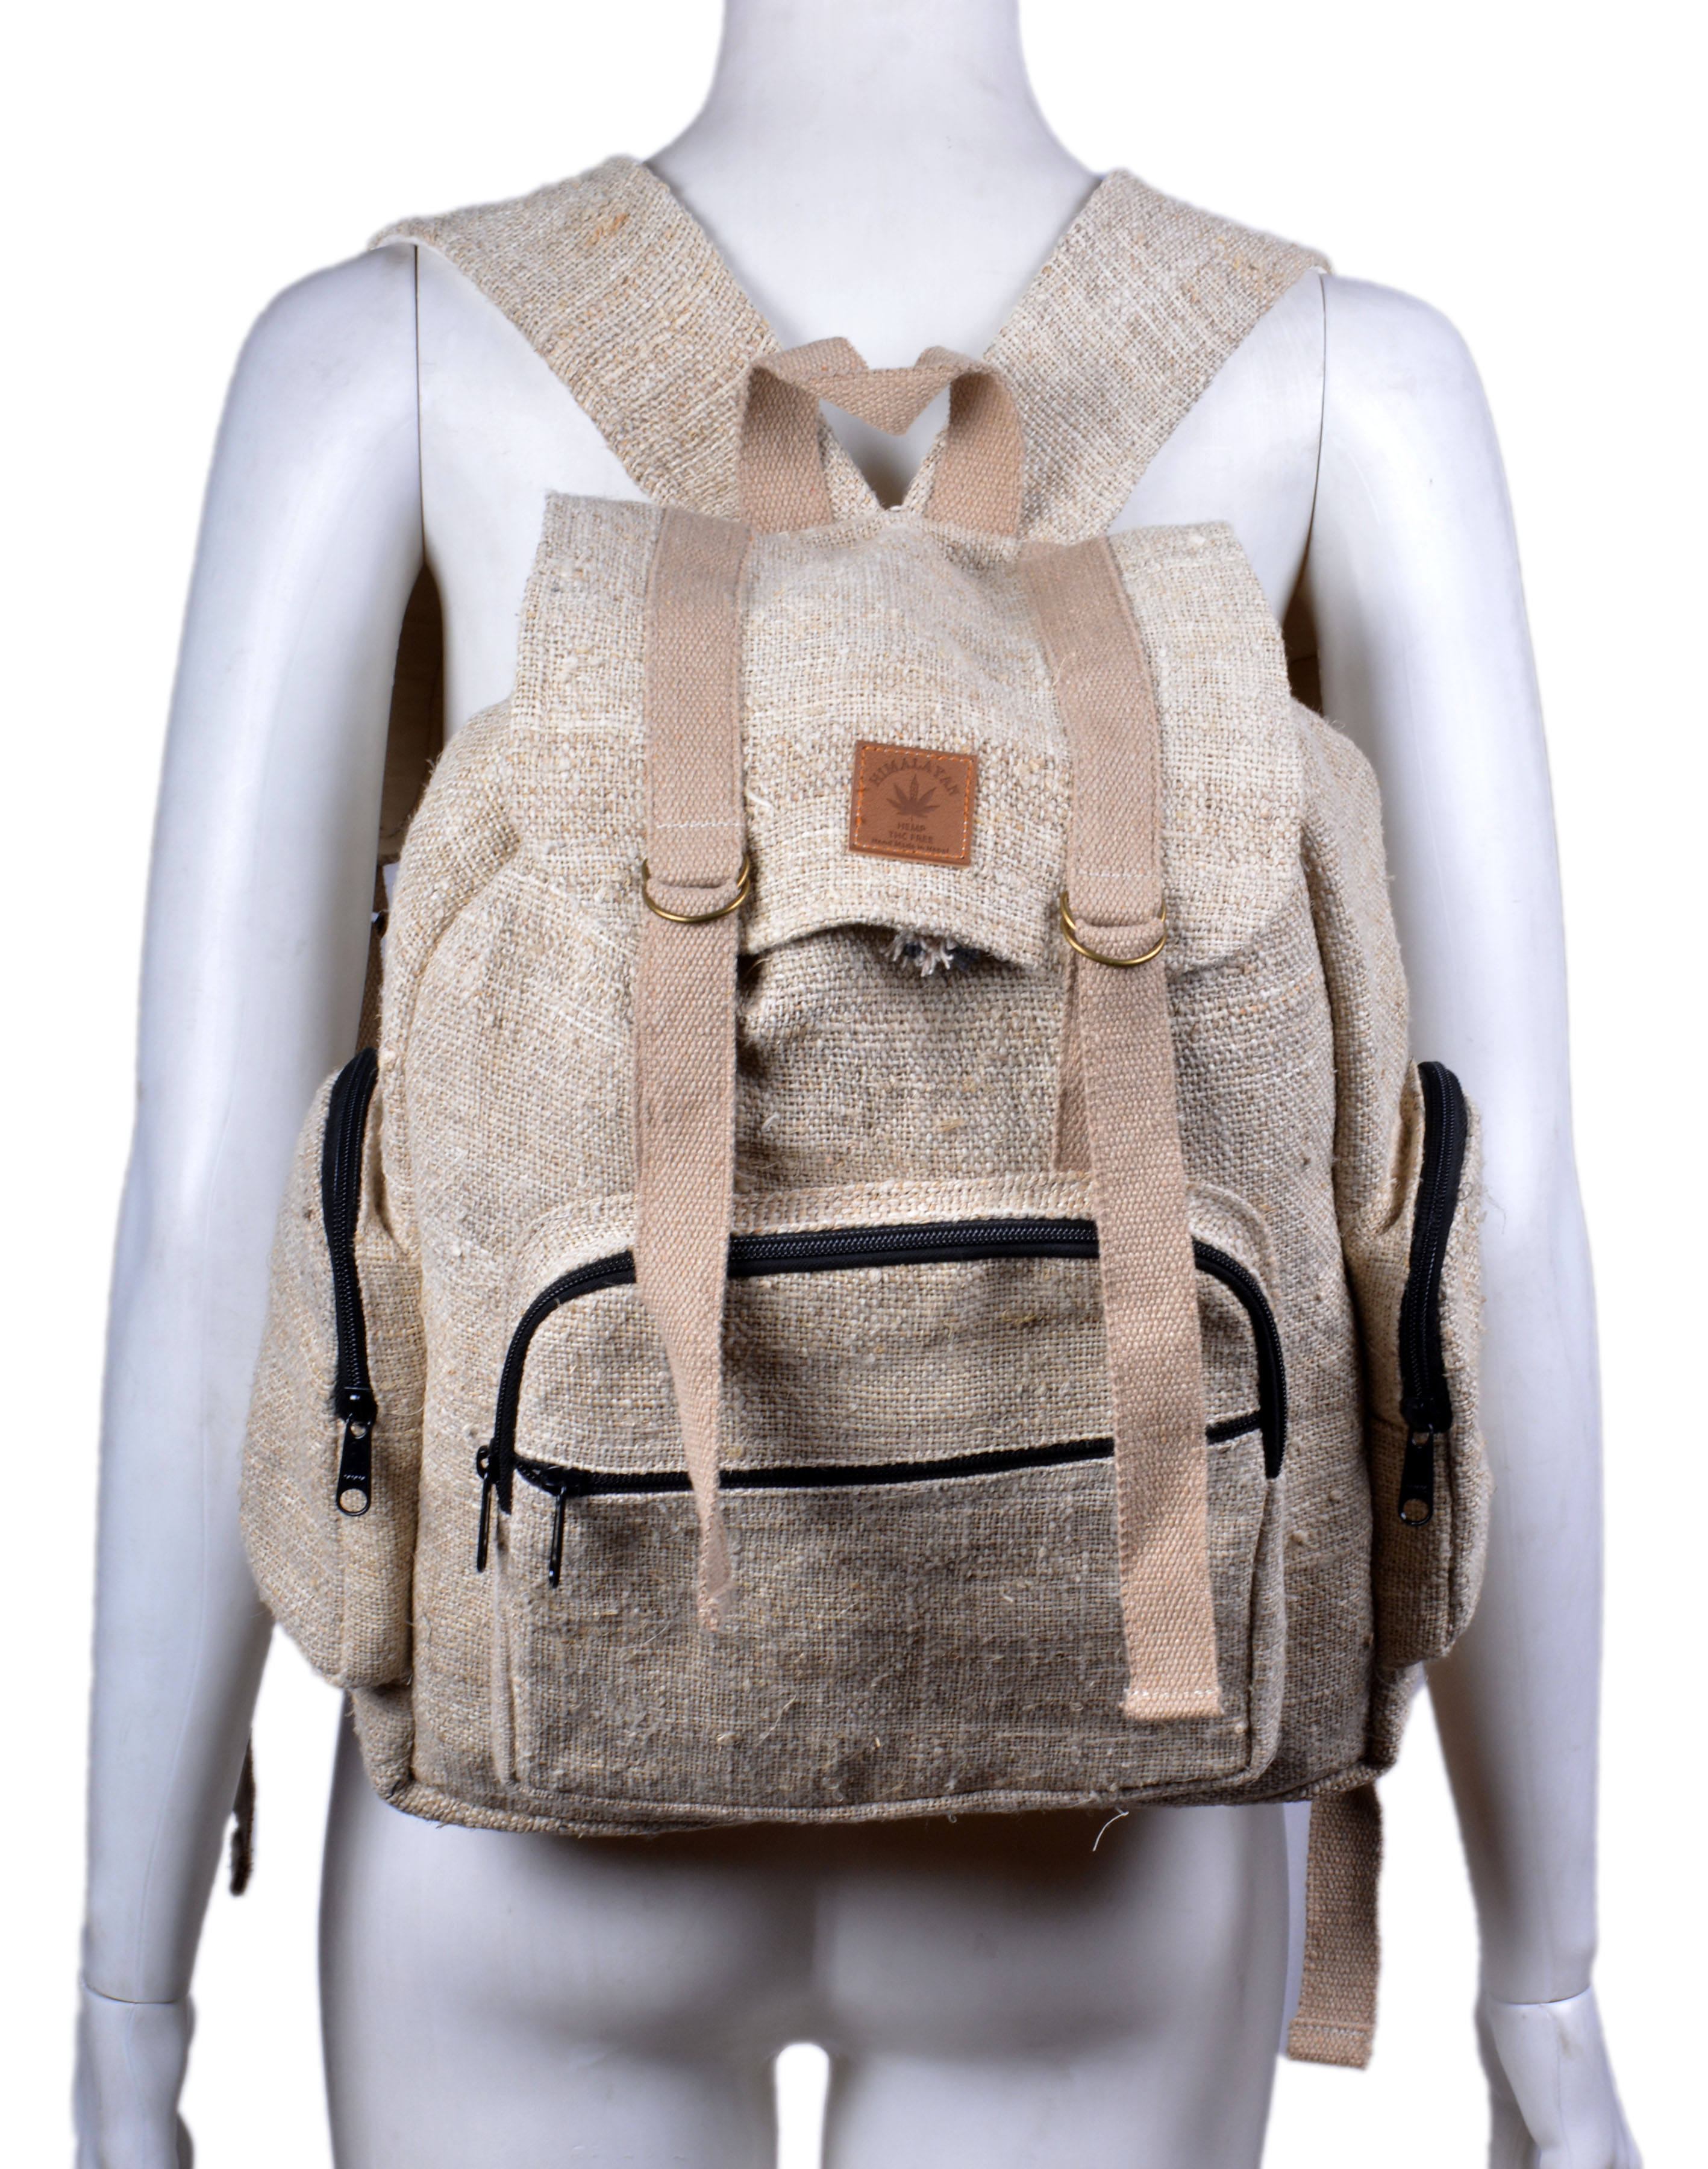 Hemp Lightweight BackPack for Men Casual Backpack Trendy Fashionable Backpack Ecofriendly Natural Custom Logo Rucksack HBBH 0113